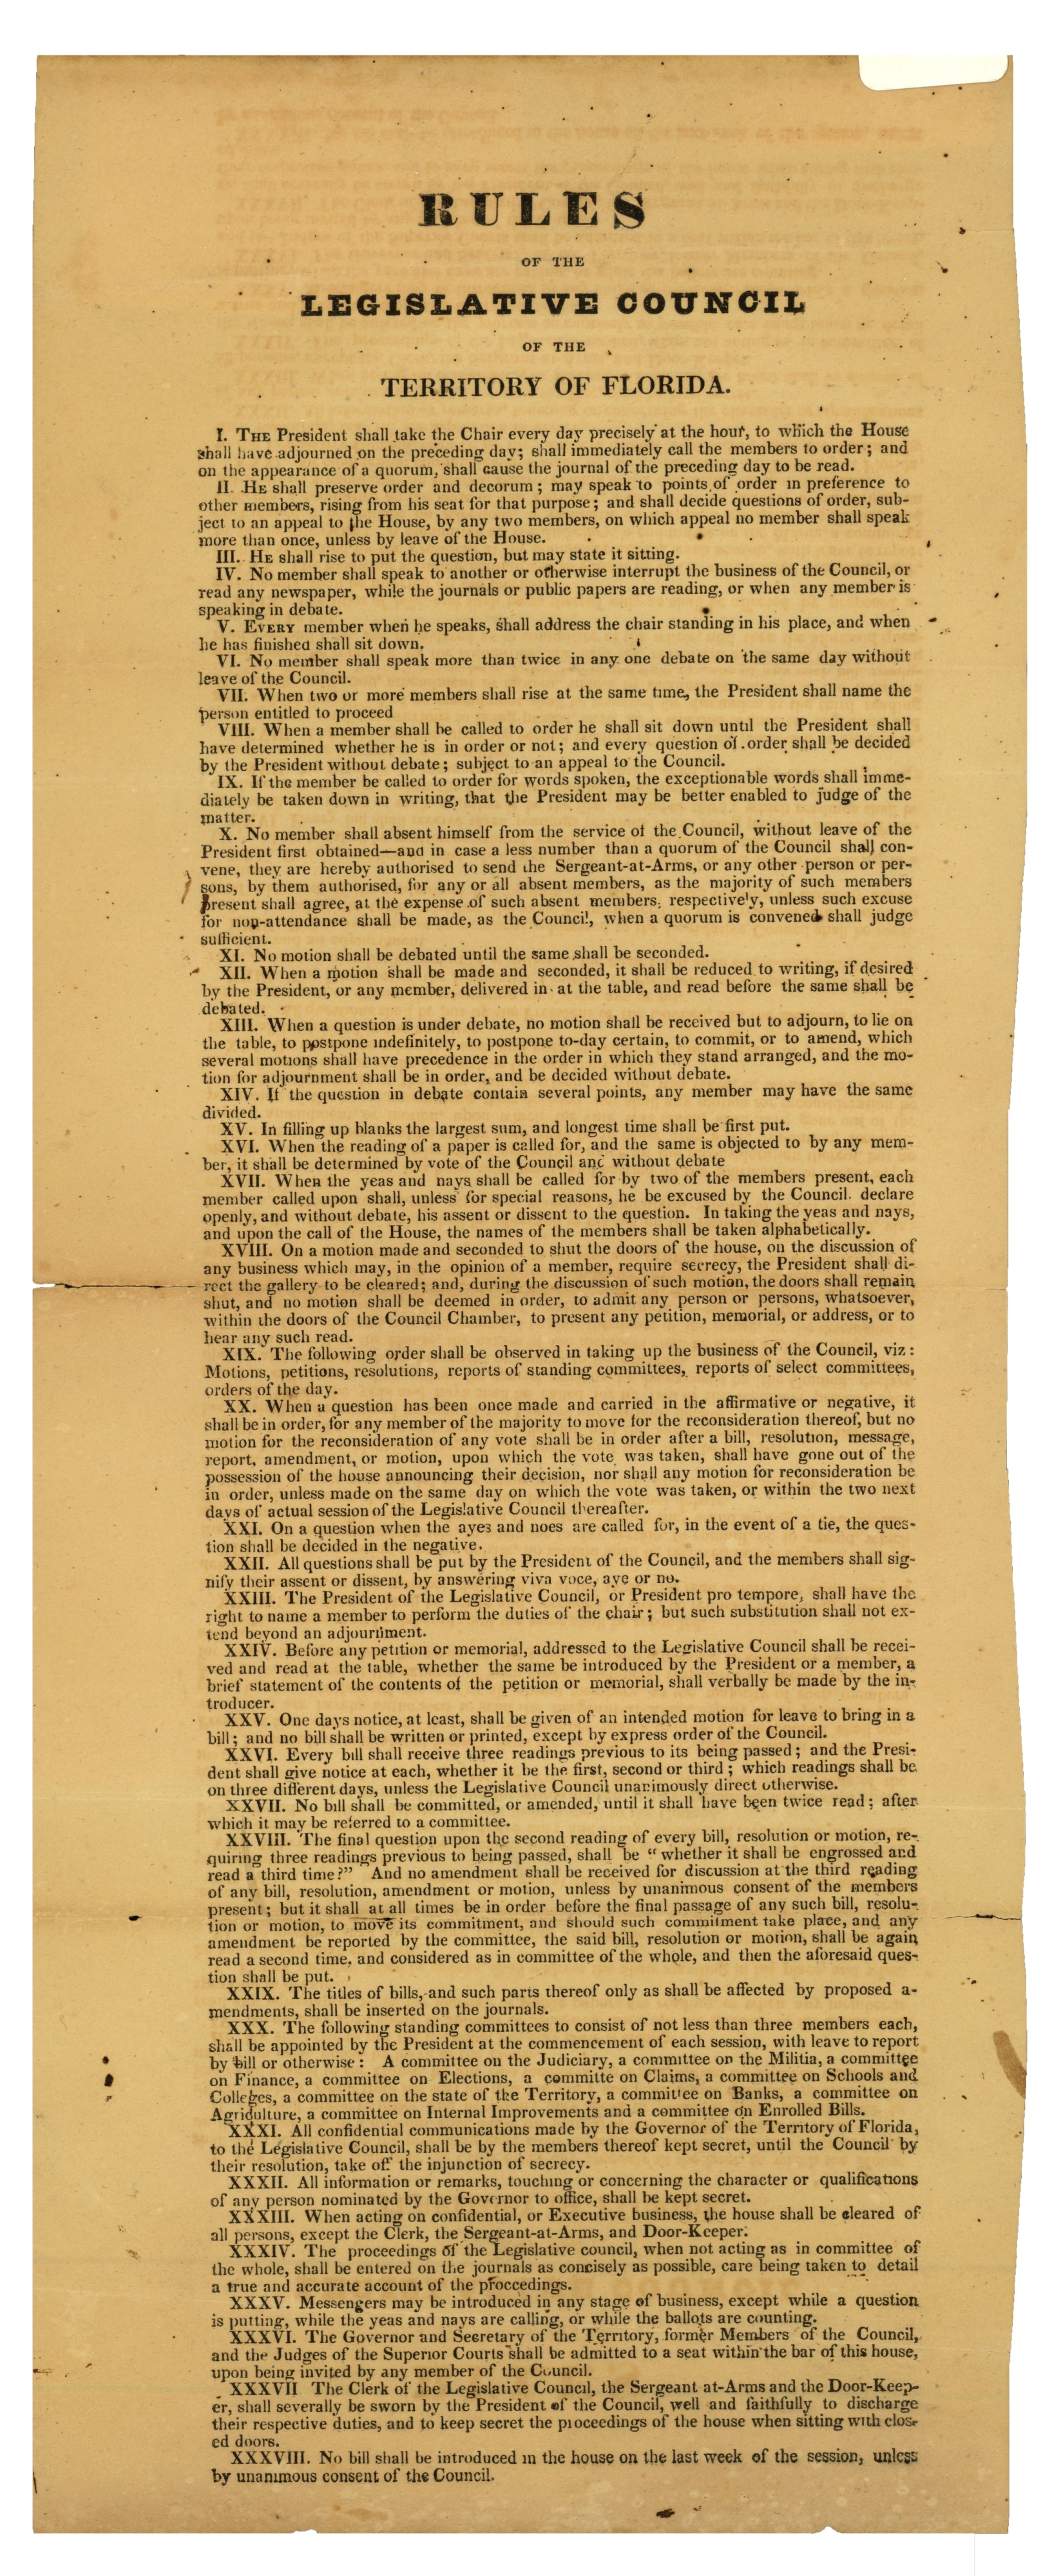 Rules of the Legislative Council of the Territory of Florida.